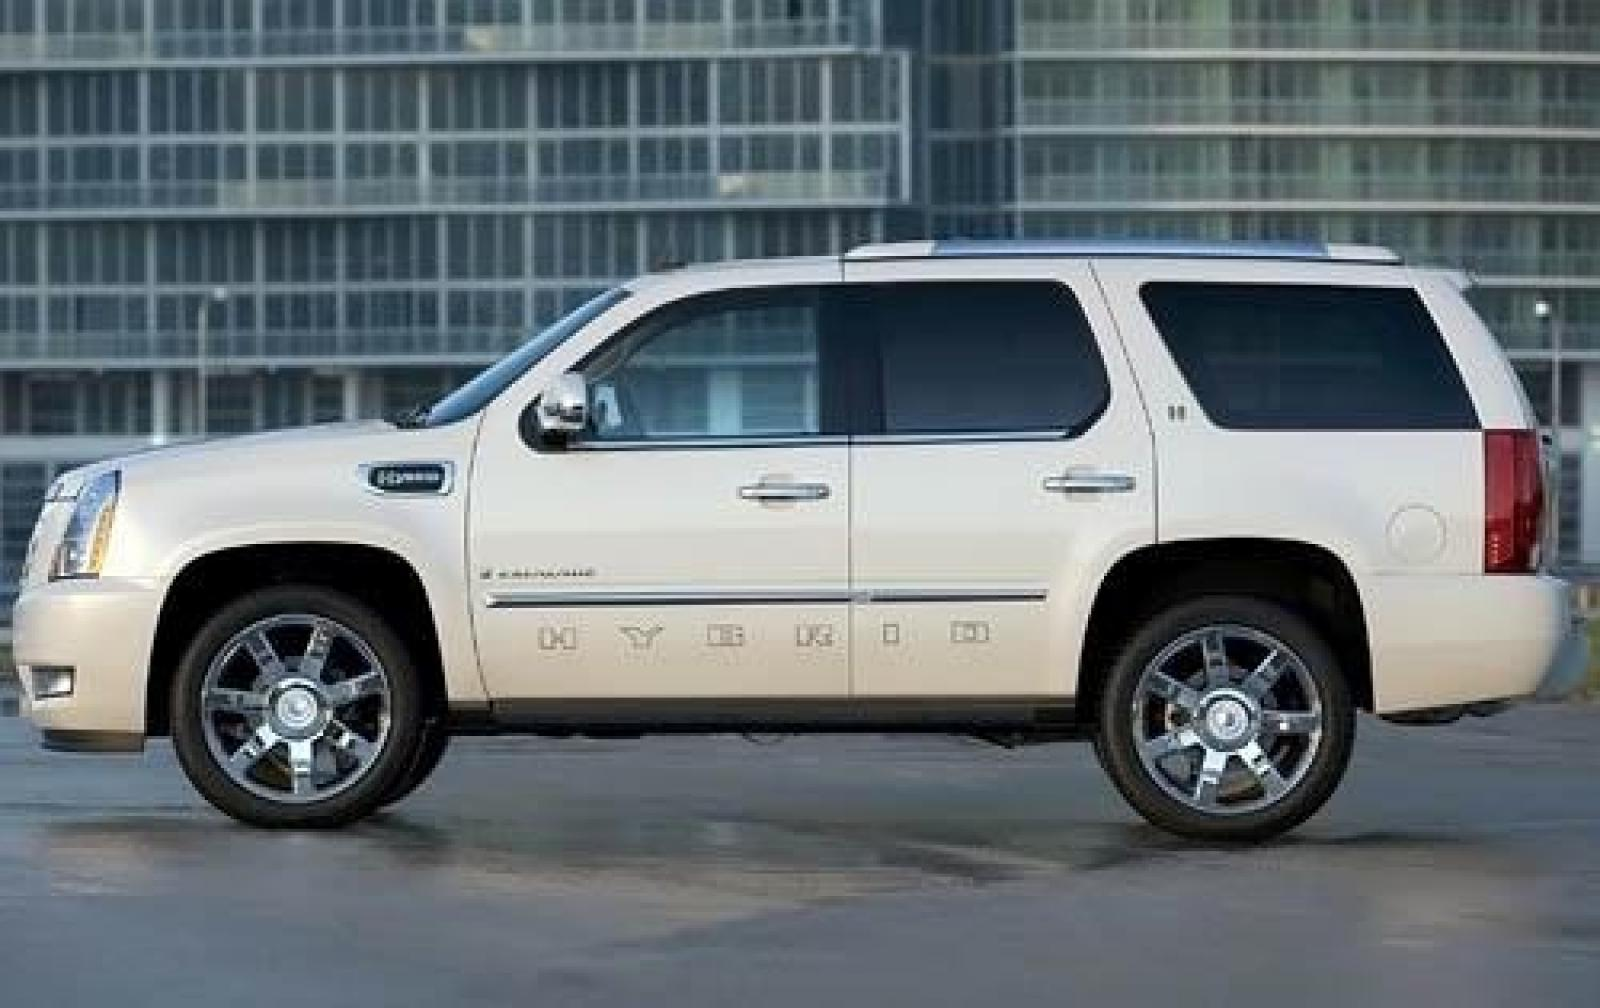 2010 cadillac escalade hybrid information and photos zombiedrive. Cars Review. Best American Auto & Cars Review